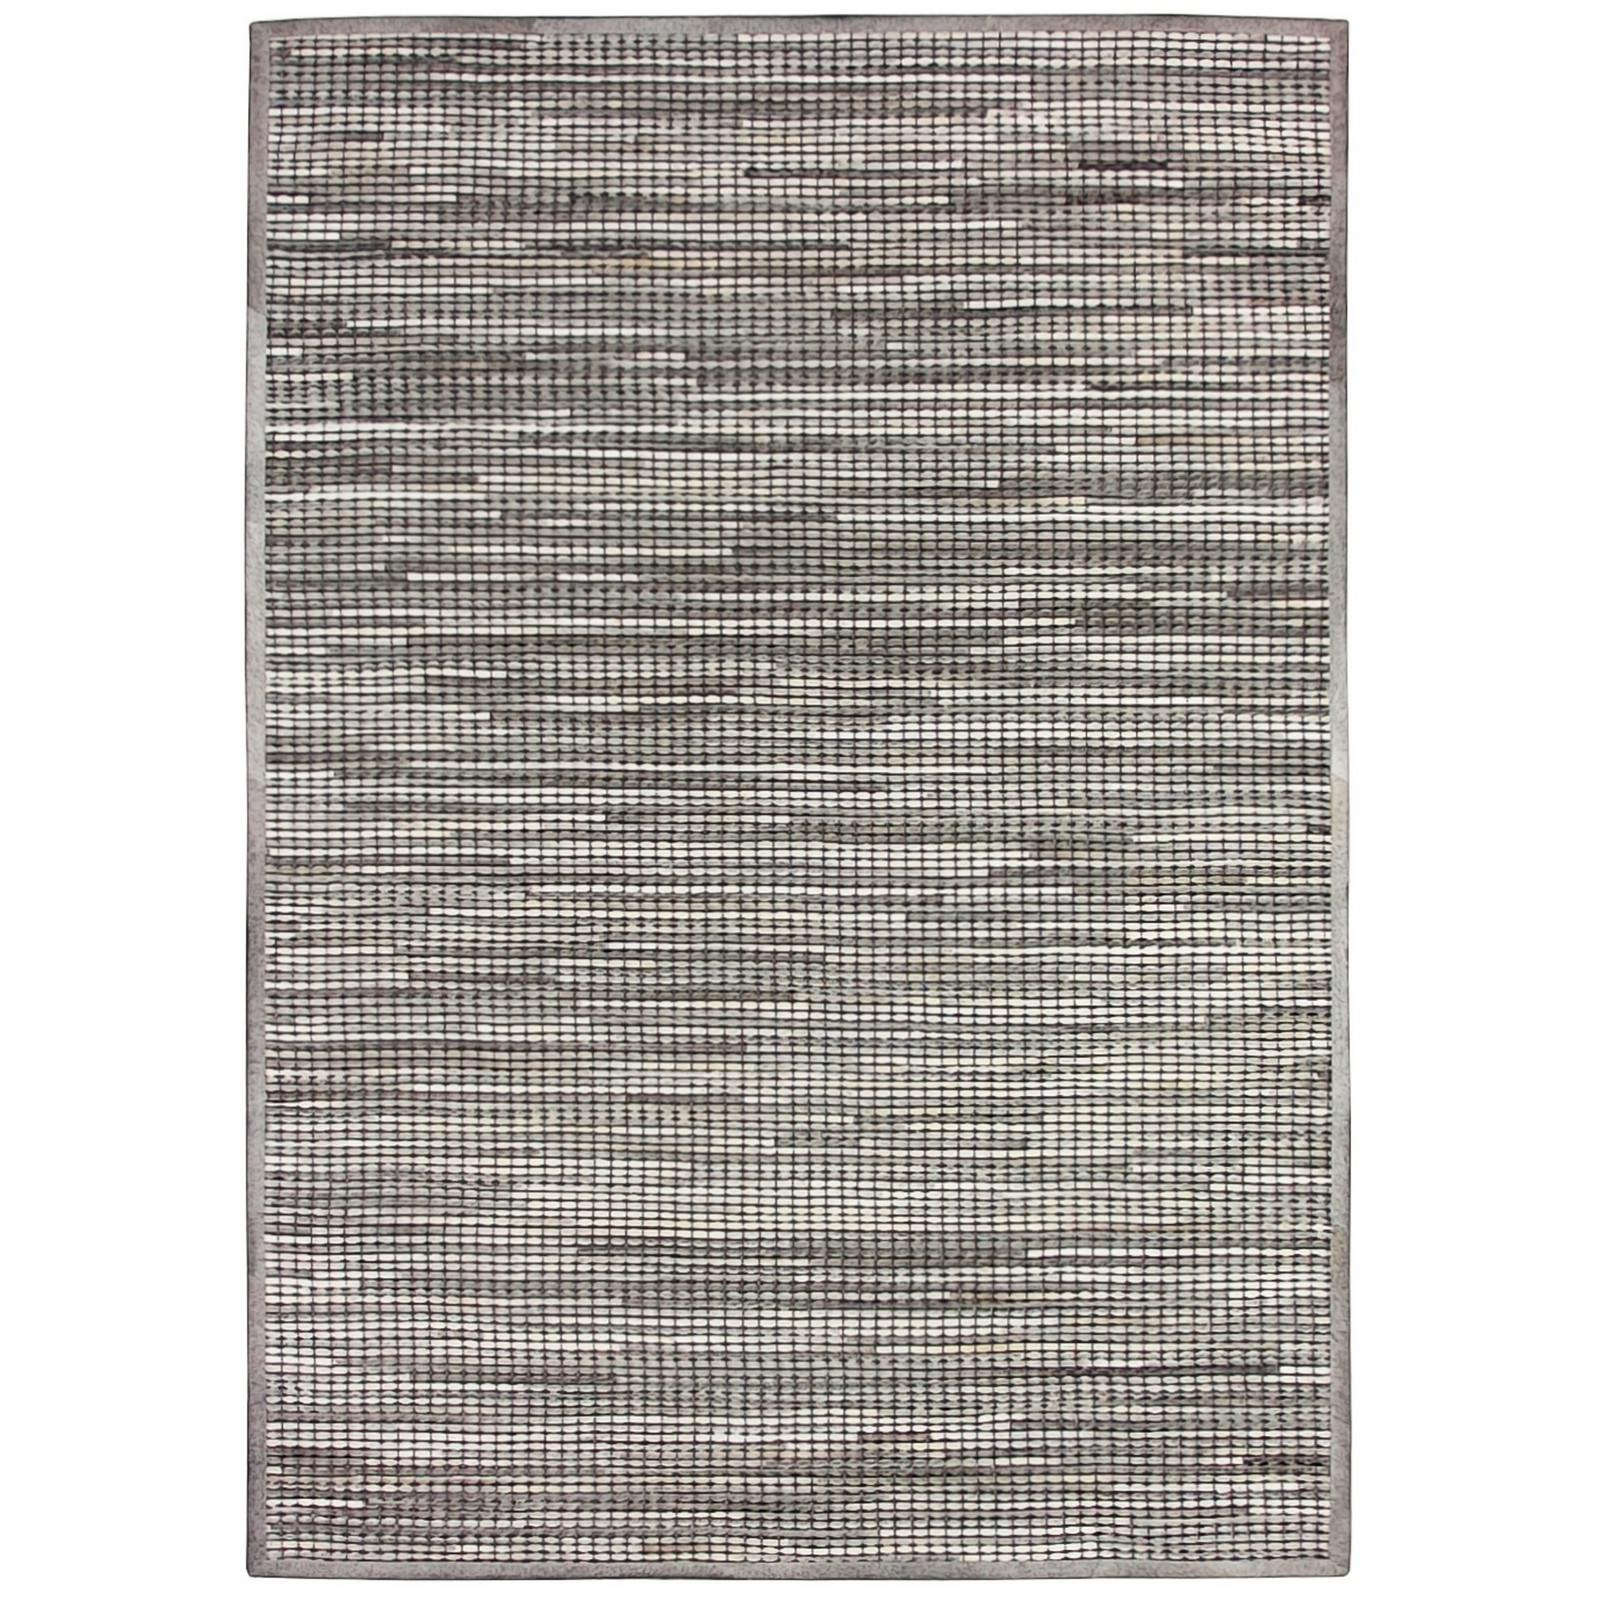 Chase Handwoven Hide & Leather Rug, 300x400cm, Grey